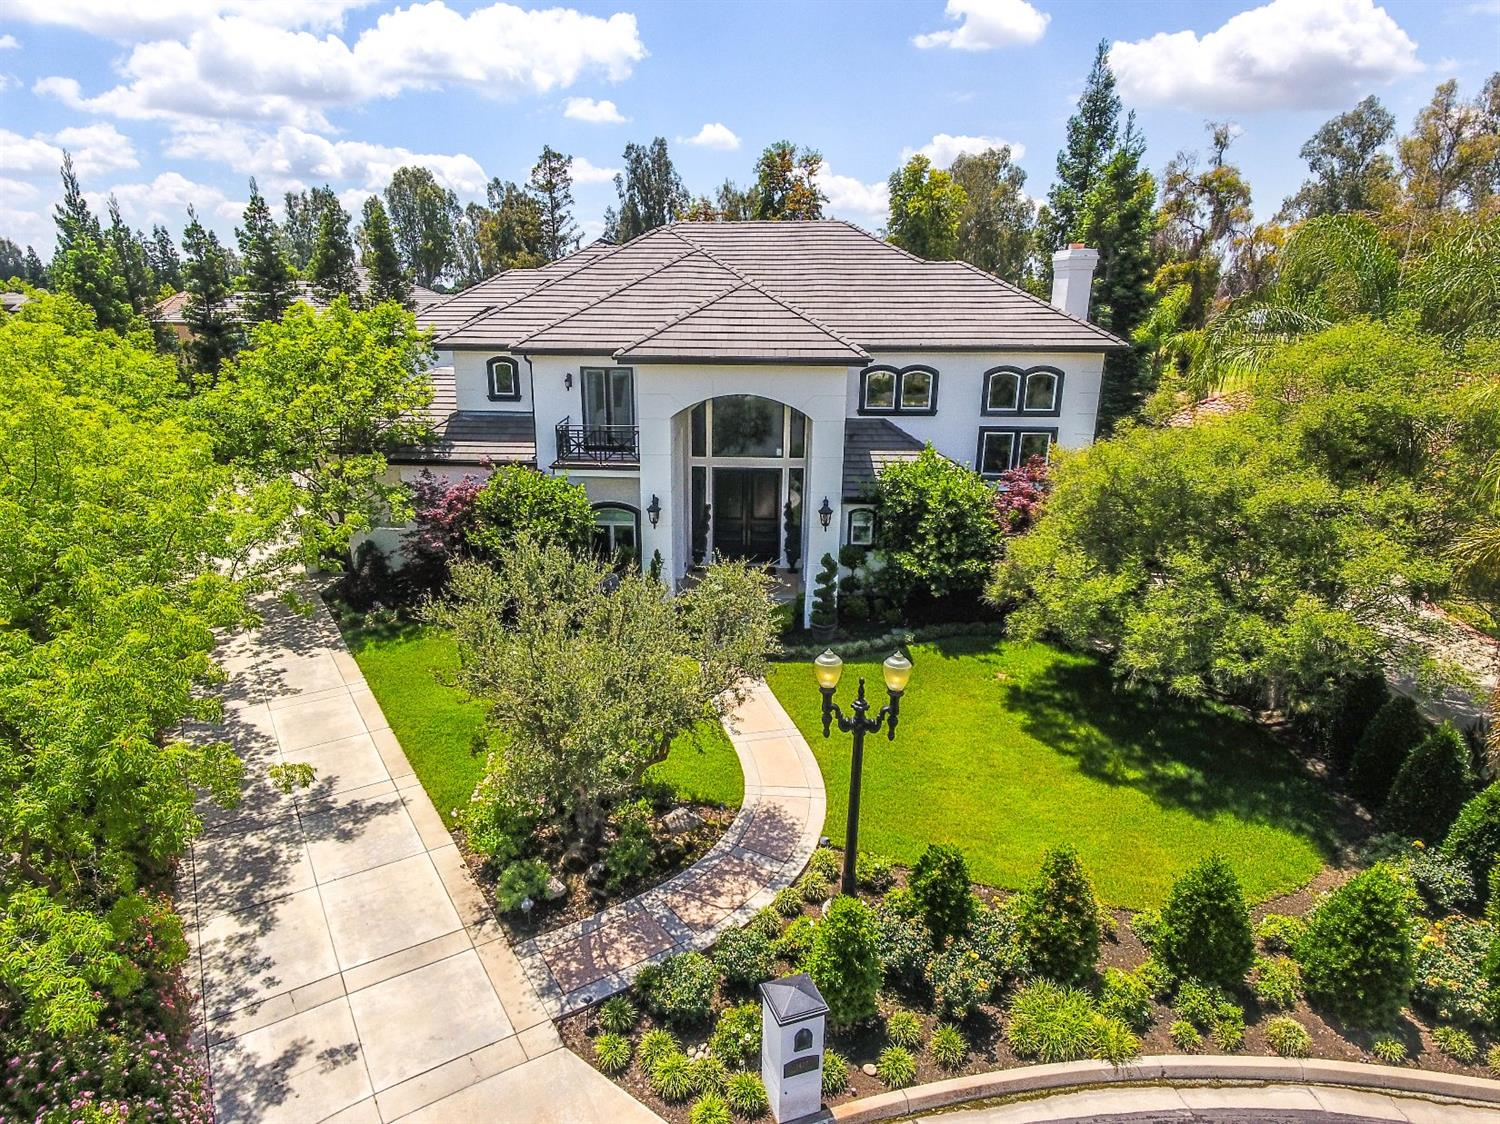 Luxury Estate on The Fairway at Fort Washington Country Club! This privately gated premier view lot at Country Club Estates II is masterfully remodeled to become one of Fresno's finest Estates. Gorgeous handcrafted home features impressive Great Room w/ Golf Course Views through bayed windows, Massive Hand Cast Stone Fireplace adorned by custom cabinetry, travertine floors, soaring box ceiling & wet bar w/ seating. Exquisite Kitchen will Impress! 48'' Dacor commercial range w/ 2 ovens, 2 dishwashers, warming oven, built-in cutting board, 2 sinks, 2 refrigerators, lrg pantry, & Breakfast Area. Relax in the Sumptuous Owners Retreat w/its two-sided fireplace, corner-sitting area w/ magnificent views, French doors to private balcony & Stunning Bath. Manicured yard features gorgeous panoramas w/ Pebbletec Pool & Spa, multiple patios, outdoor Kitchen & koi pond. Exquisite Finishes & Custom Refinements have been Flawlessly Employed Throughout. Luxury Properties of this Statue are a RARE find!